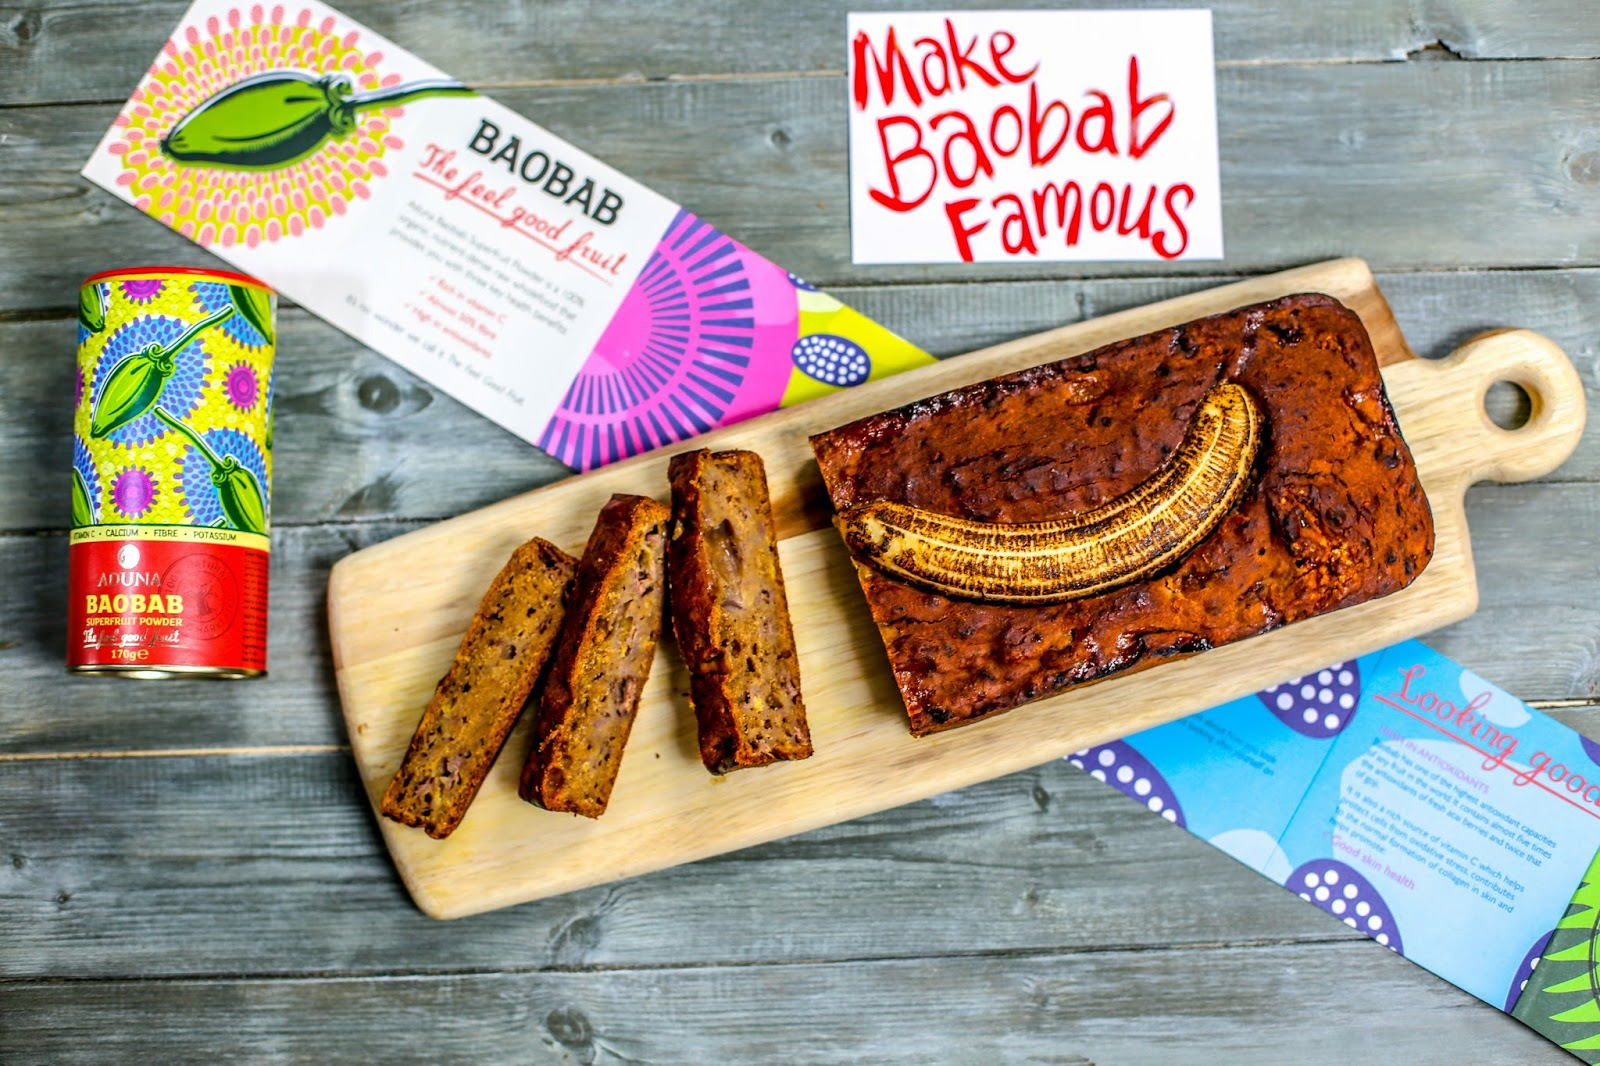 Gluten free banana bread with baobab love